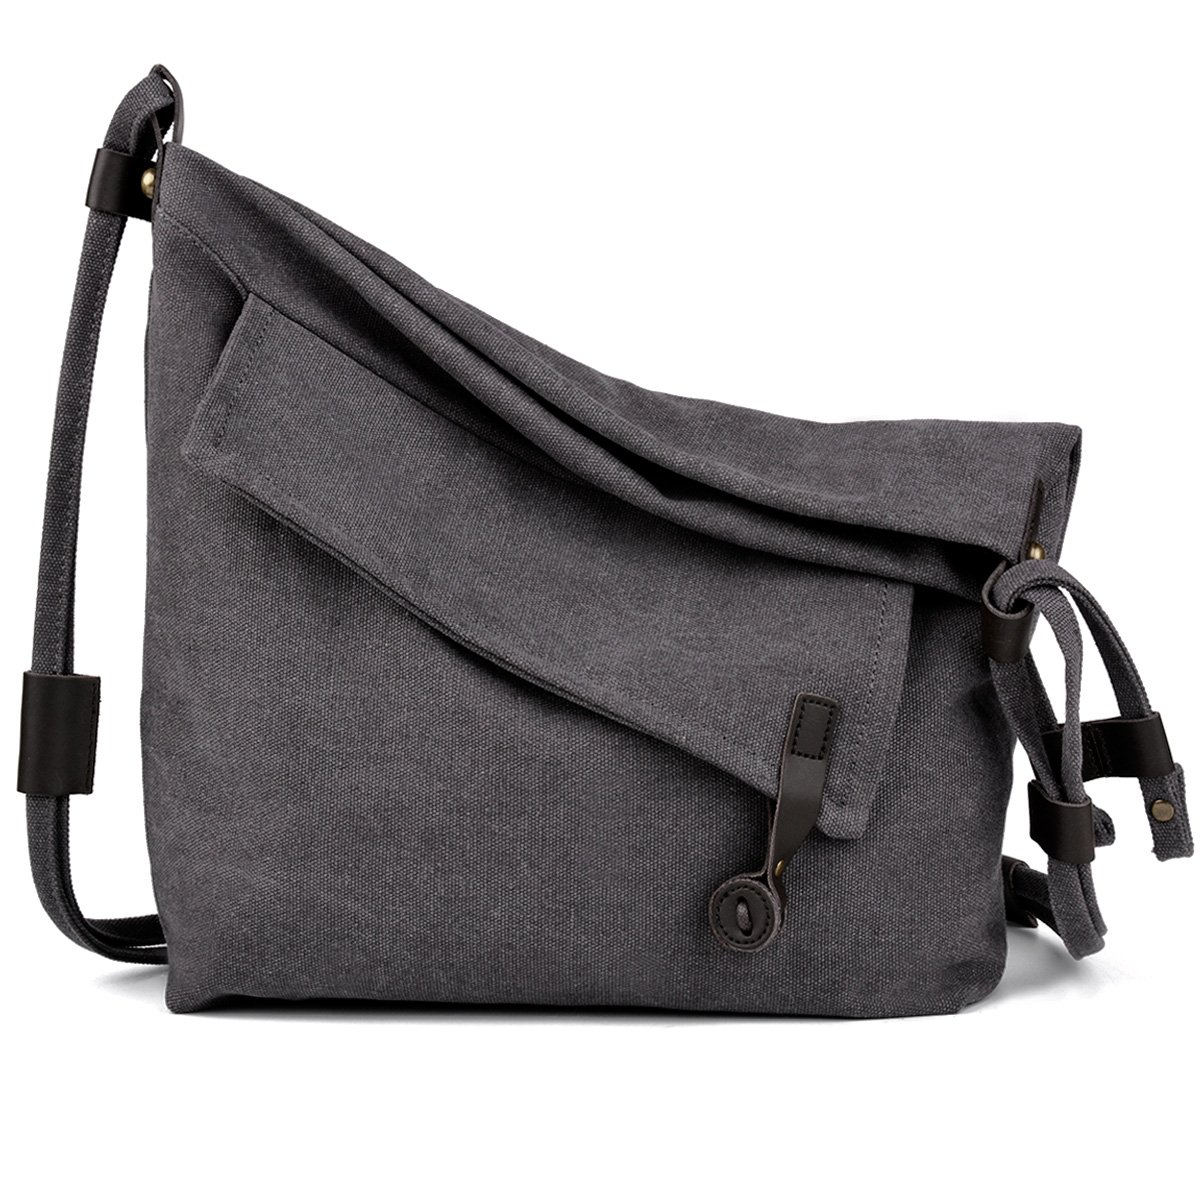 COOFIT Canvas Bag for Women Crossbody Bag Messenger Bag Shoulder Bag Hobo Bag Unisex 5815VDMM50P4HTGU04U0X16C